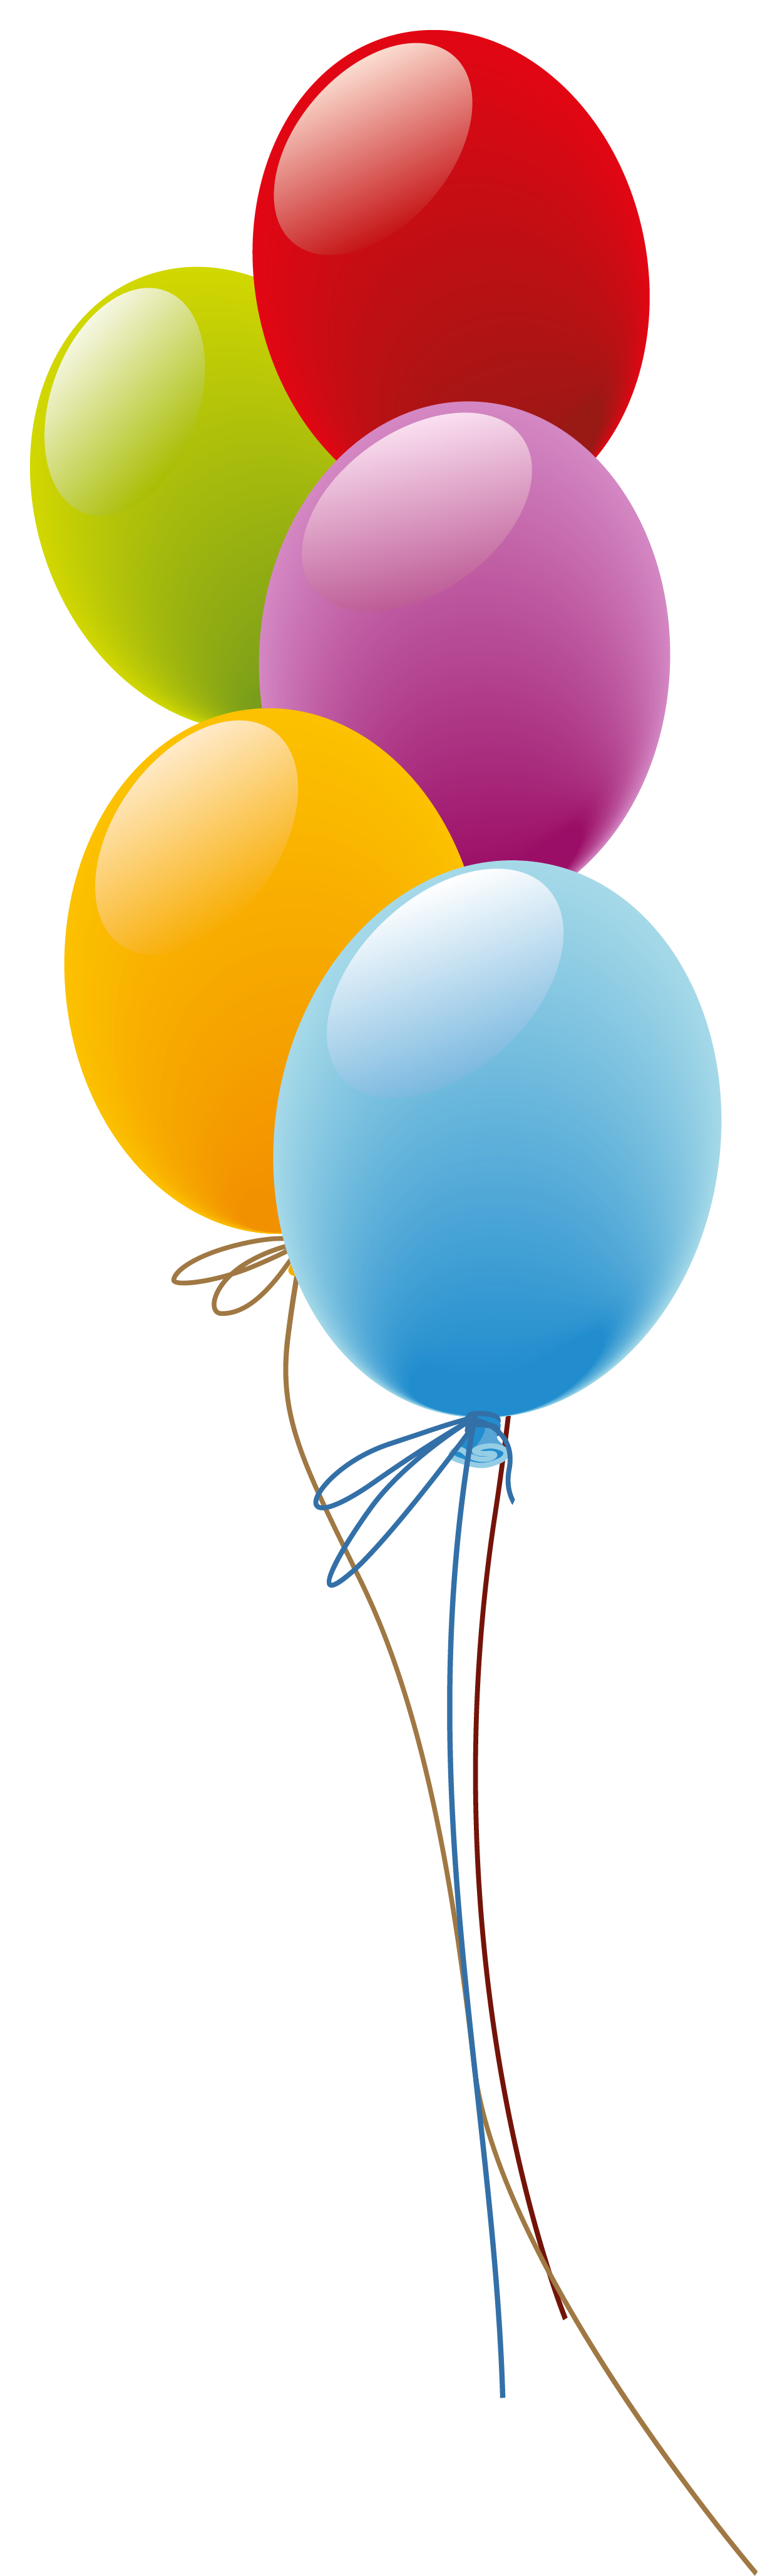 Heart shaped balloons clipart clipart download Balloons PNG Picture | Artistic Elements - Balloons | Pinterest ... clipart download